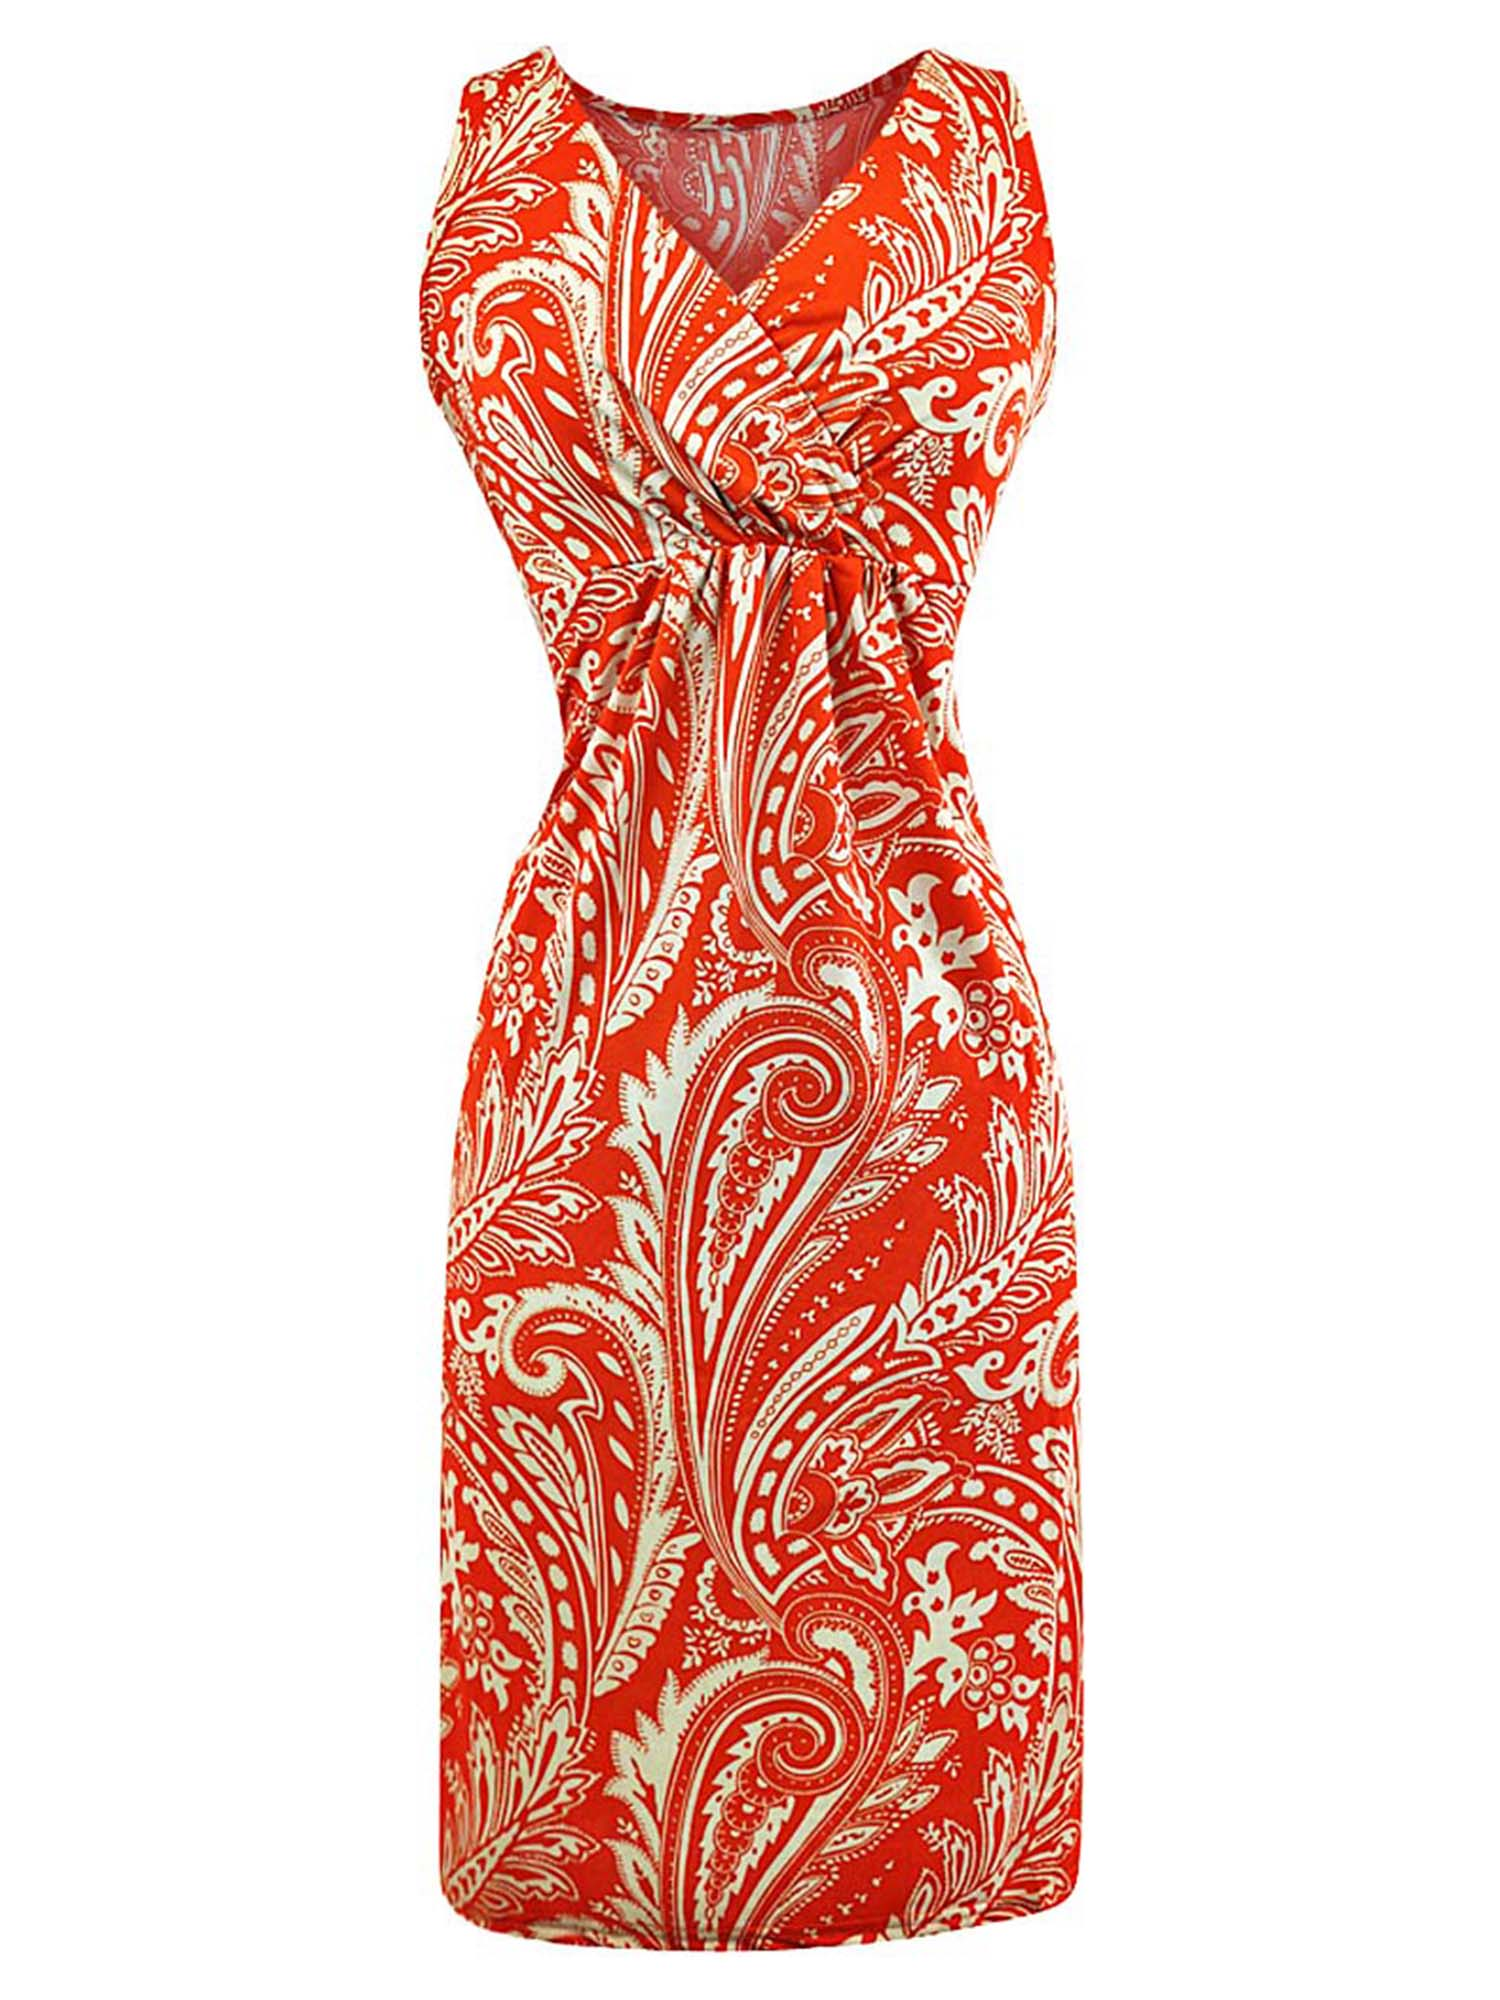 Sleeveless Paisley Print Bohemian Sundress